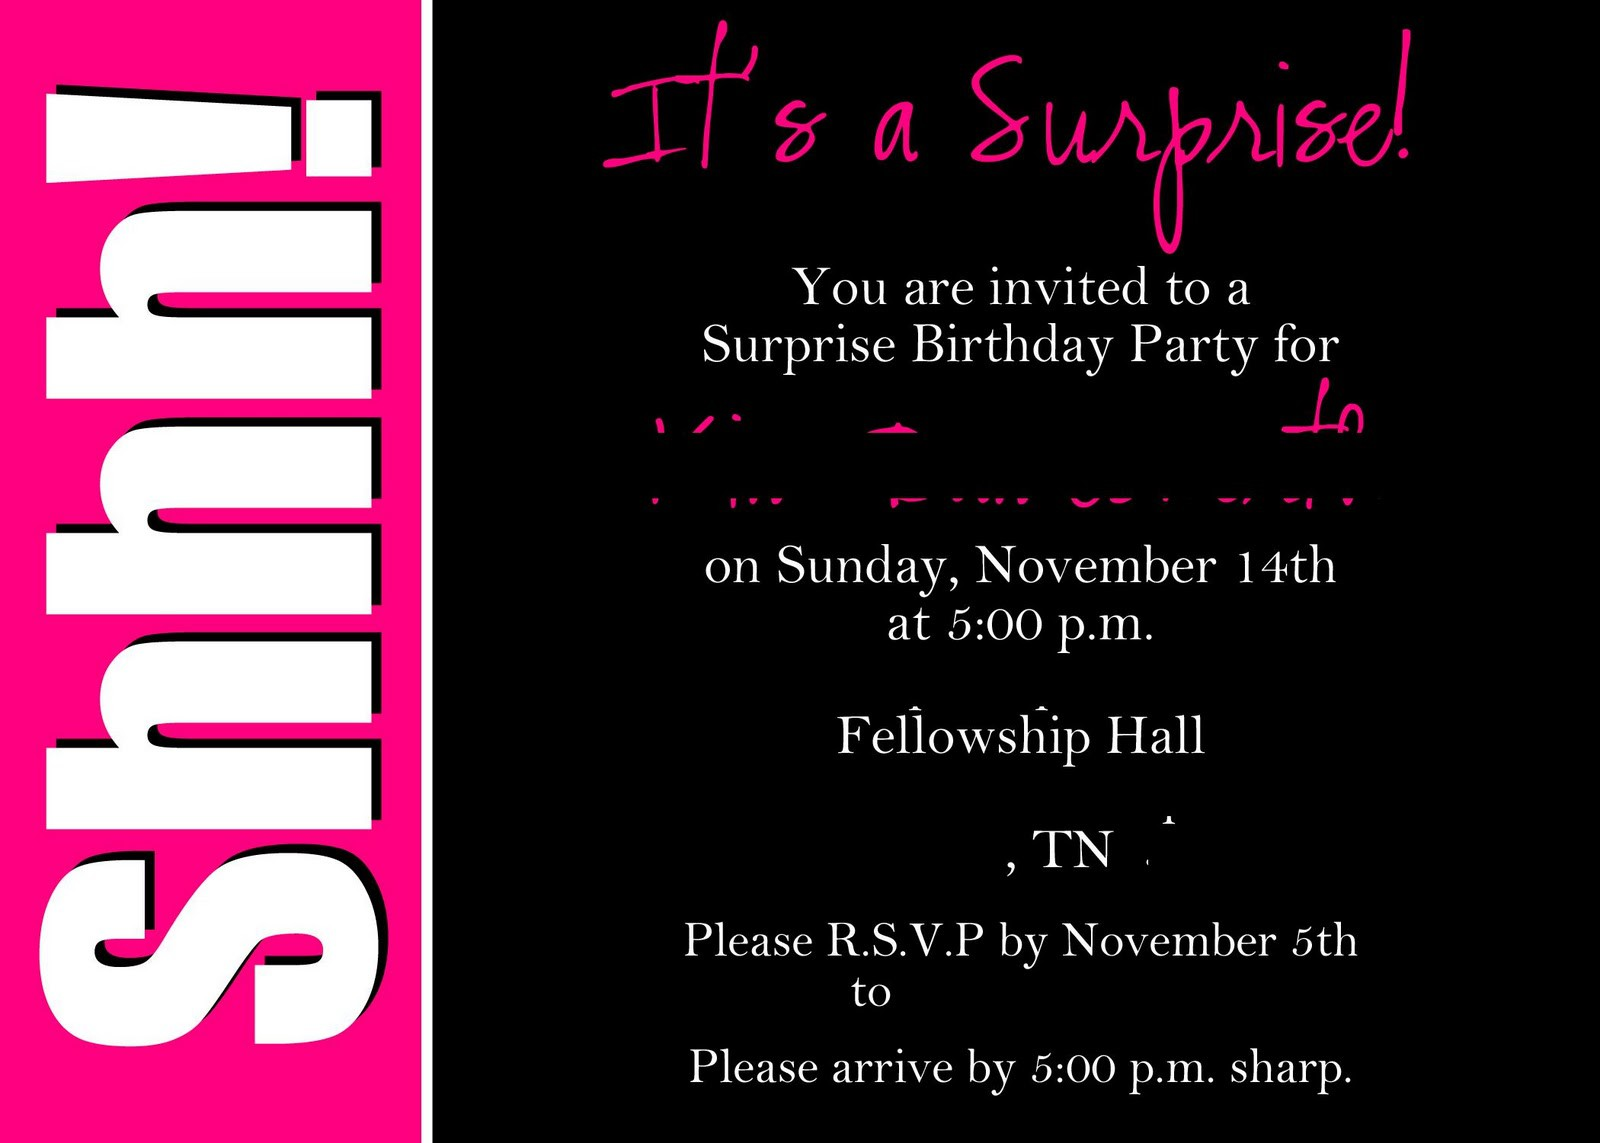 14th birthday invitation templates ; 18th-birthday-invitation-maker-free